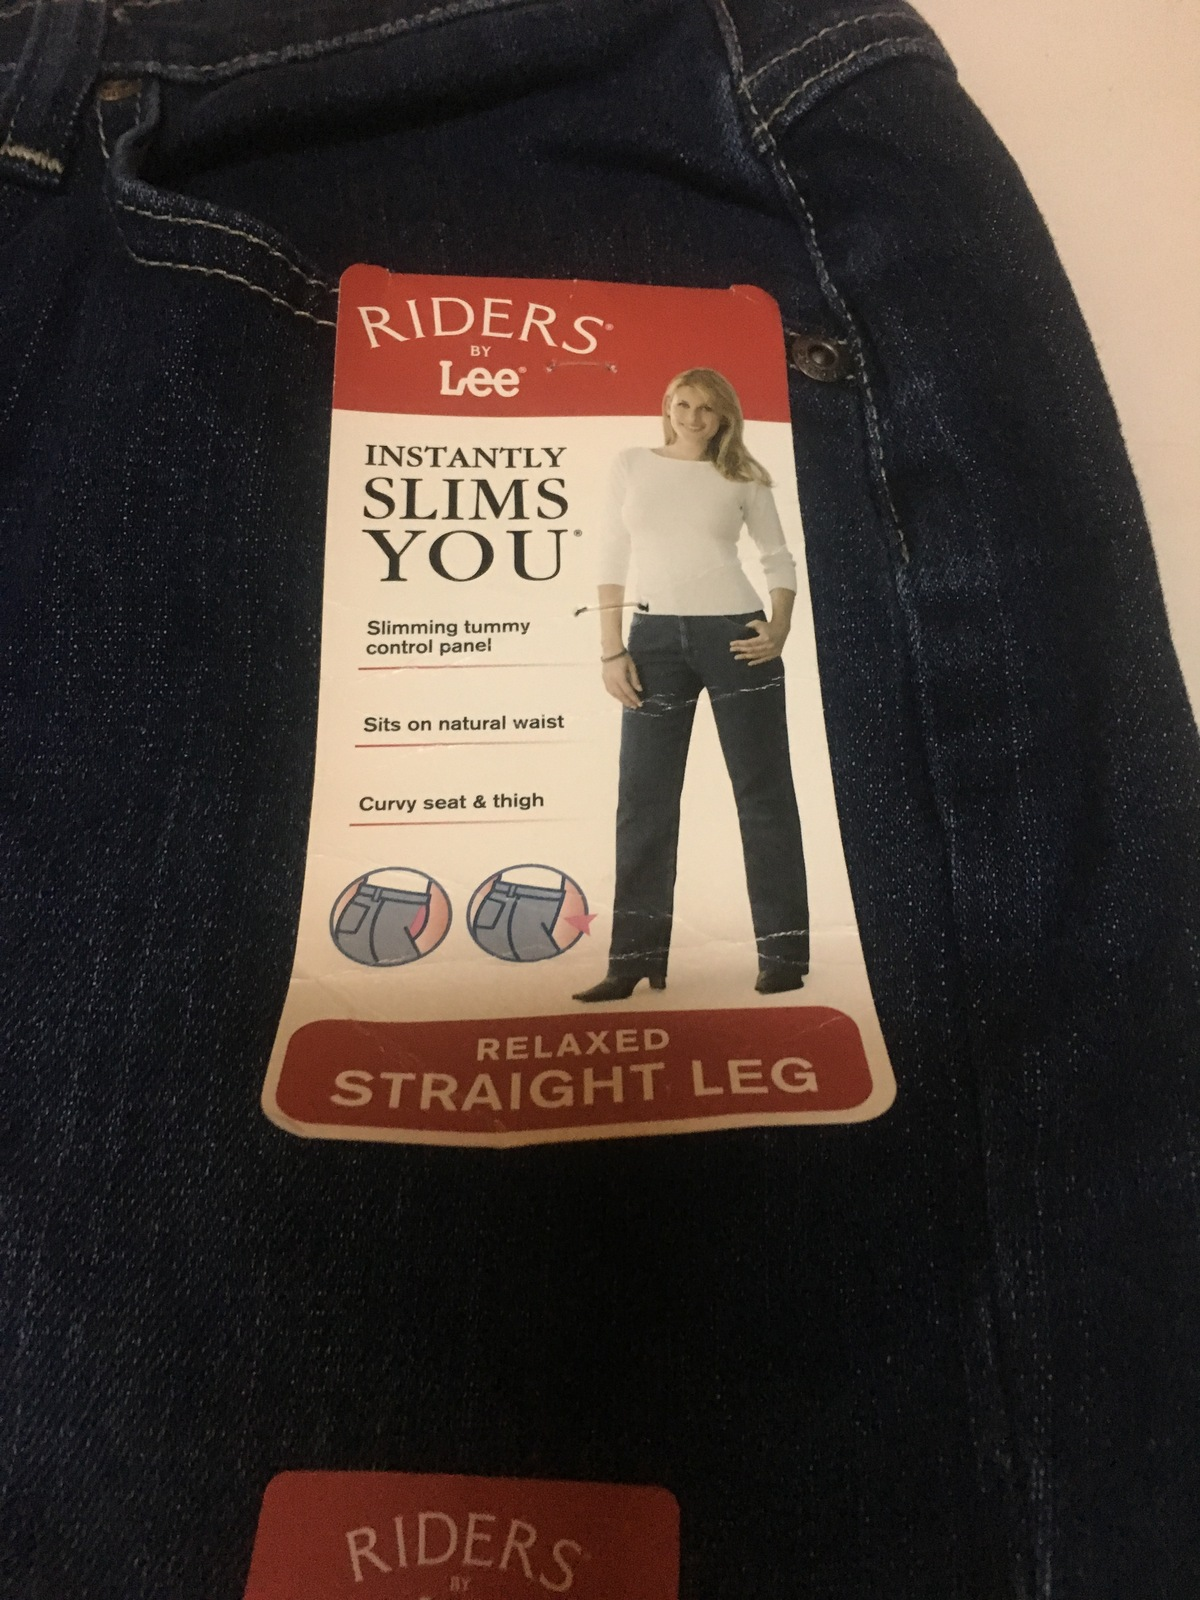 Lee Riders Blue Jeans Relaxed Straight Leg Slimming 18M